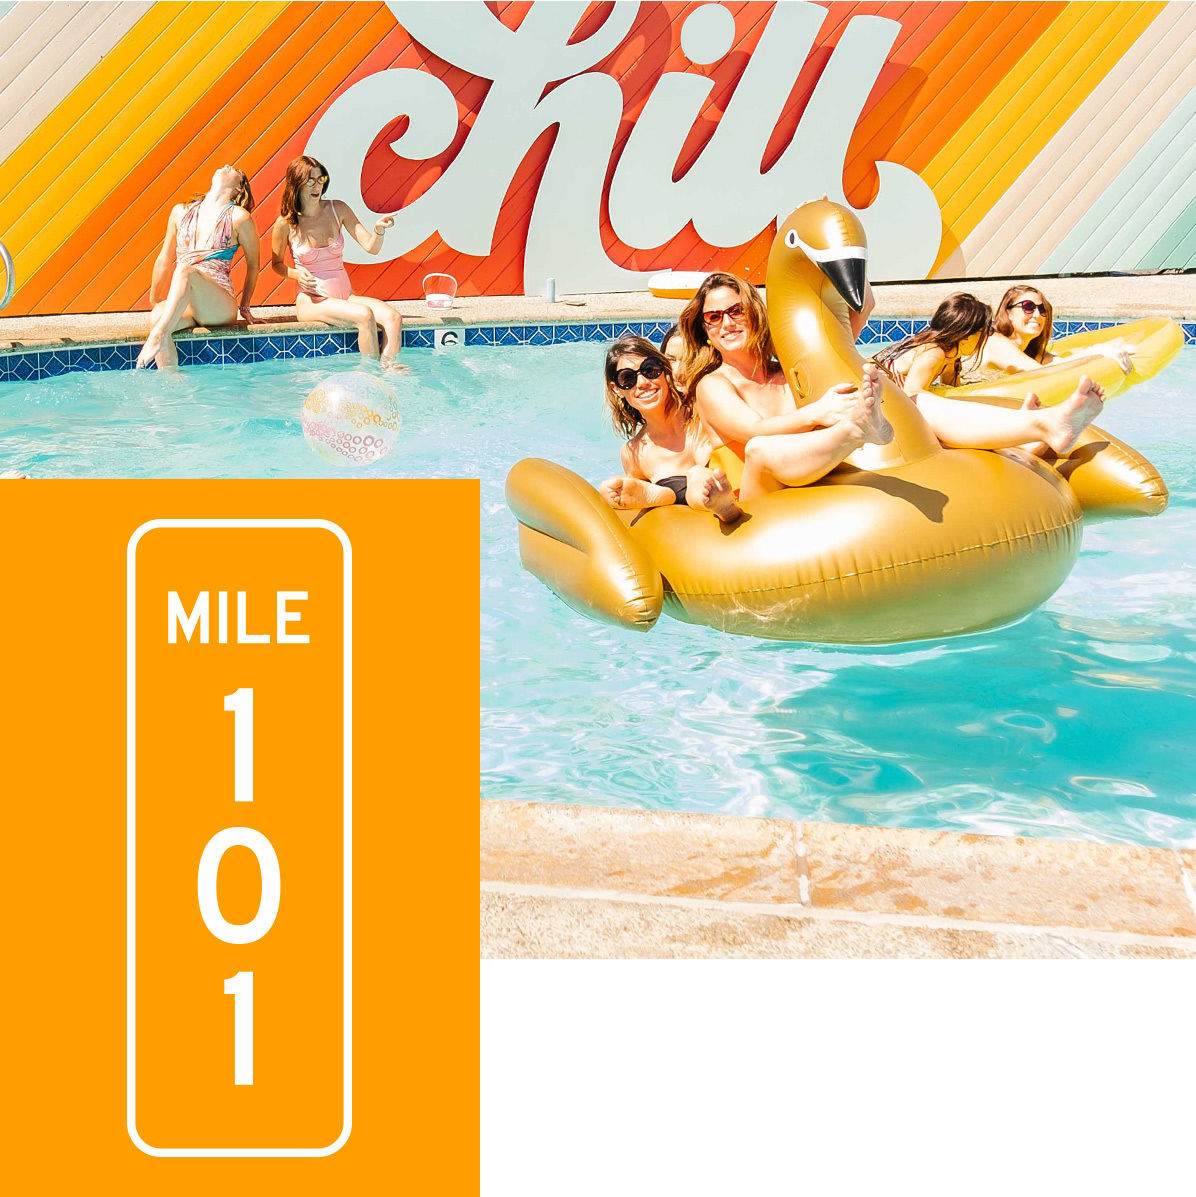 Girls hanging out in the pool and by the CHILL artwork sign. Mile Marker 101 displayed.